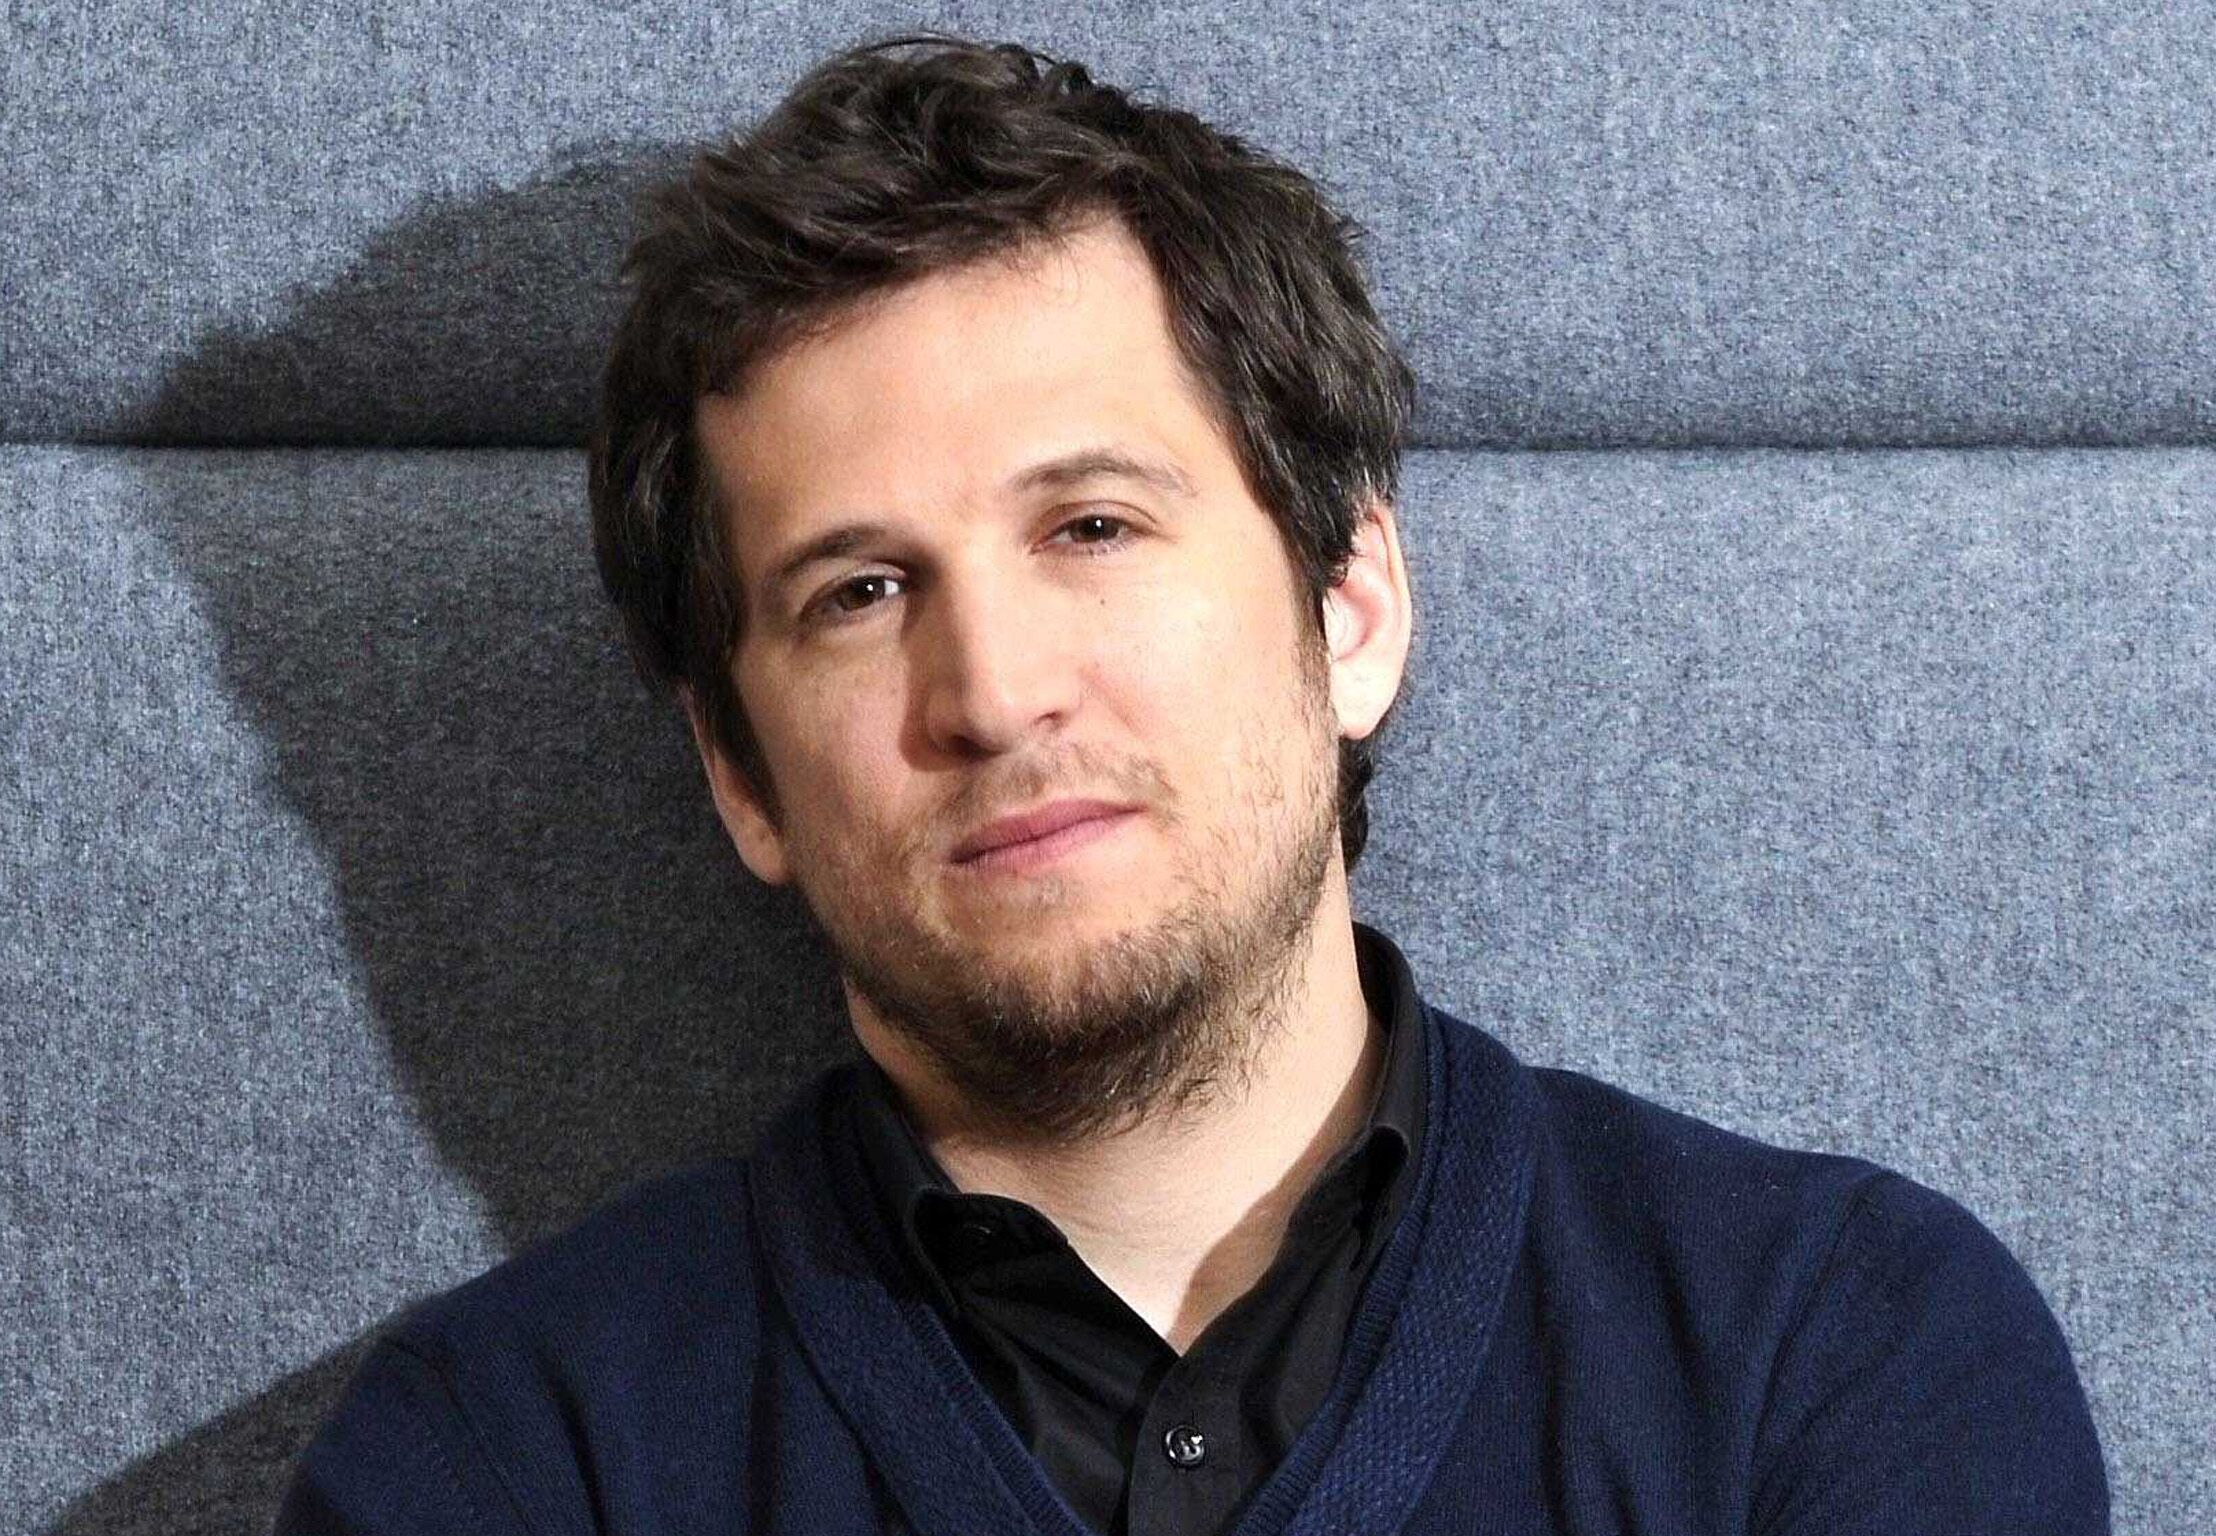 Guillaume Canet jeune